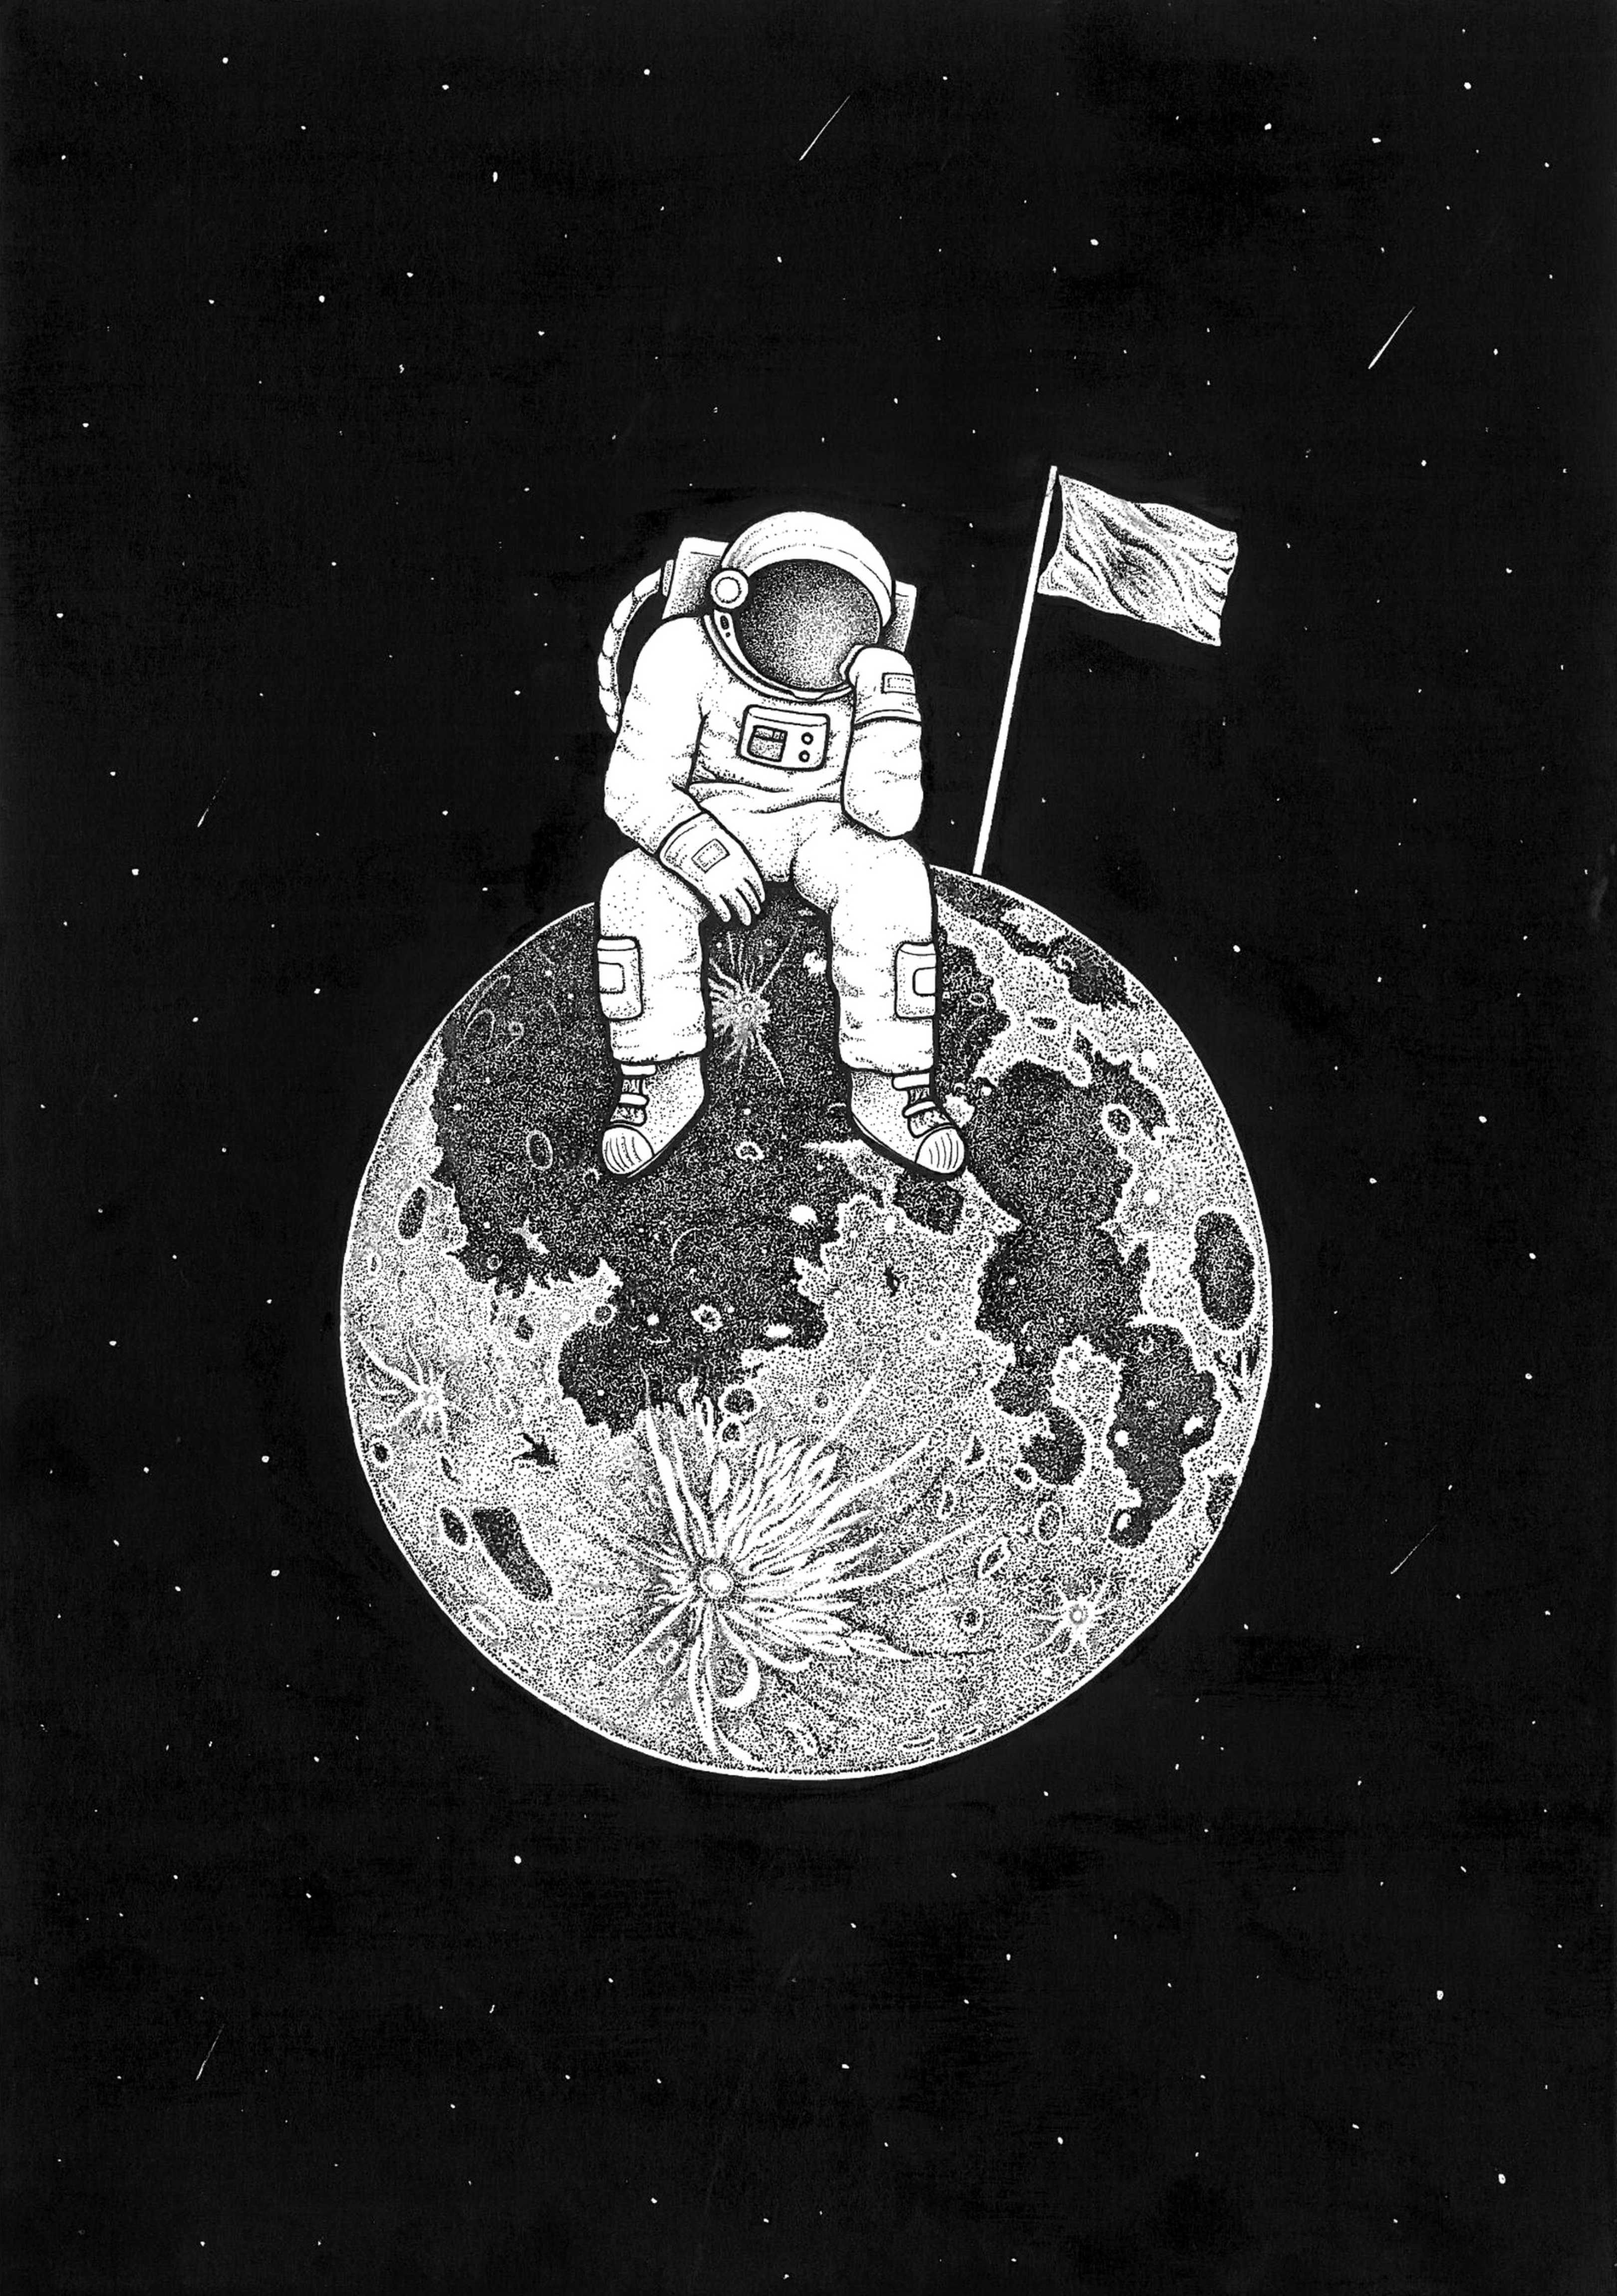 65686 Screensavers and Wallpapers Bw for phone. Download Art, Universe, Picture, Drawing, Bw, Chb, Planet, Astronaut pictures for free